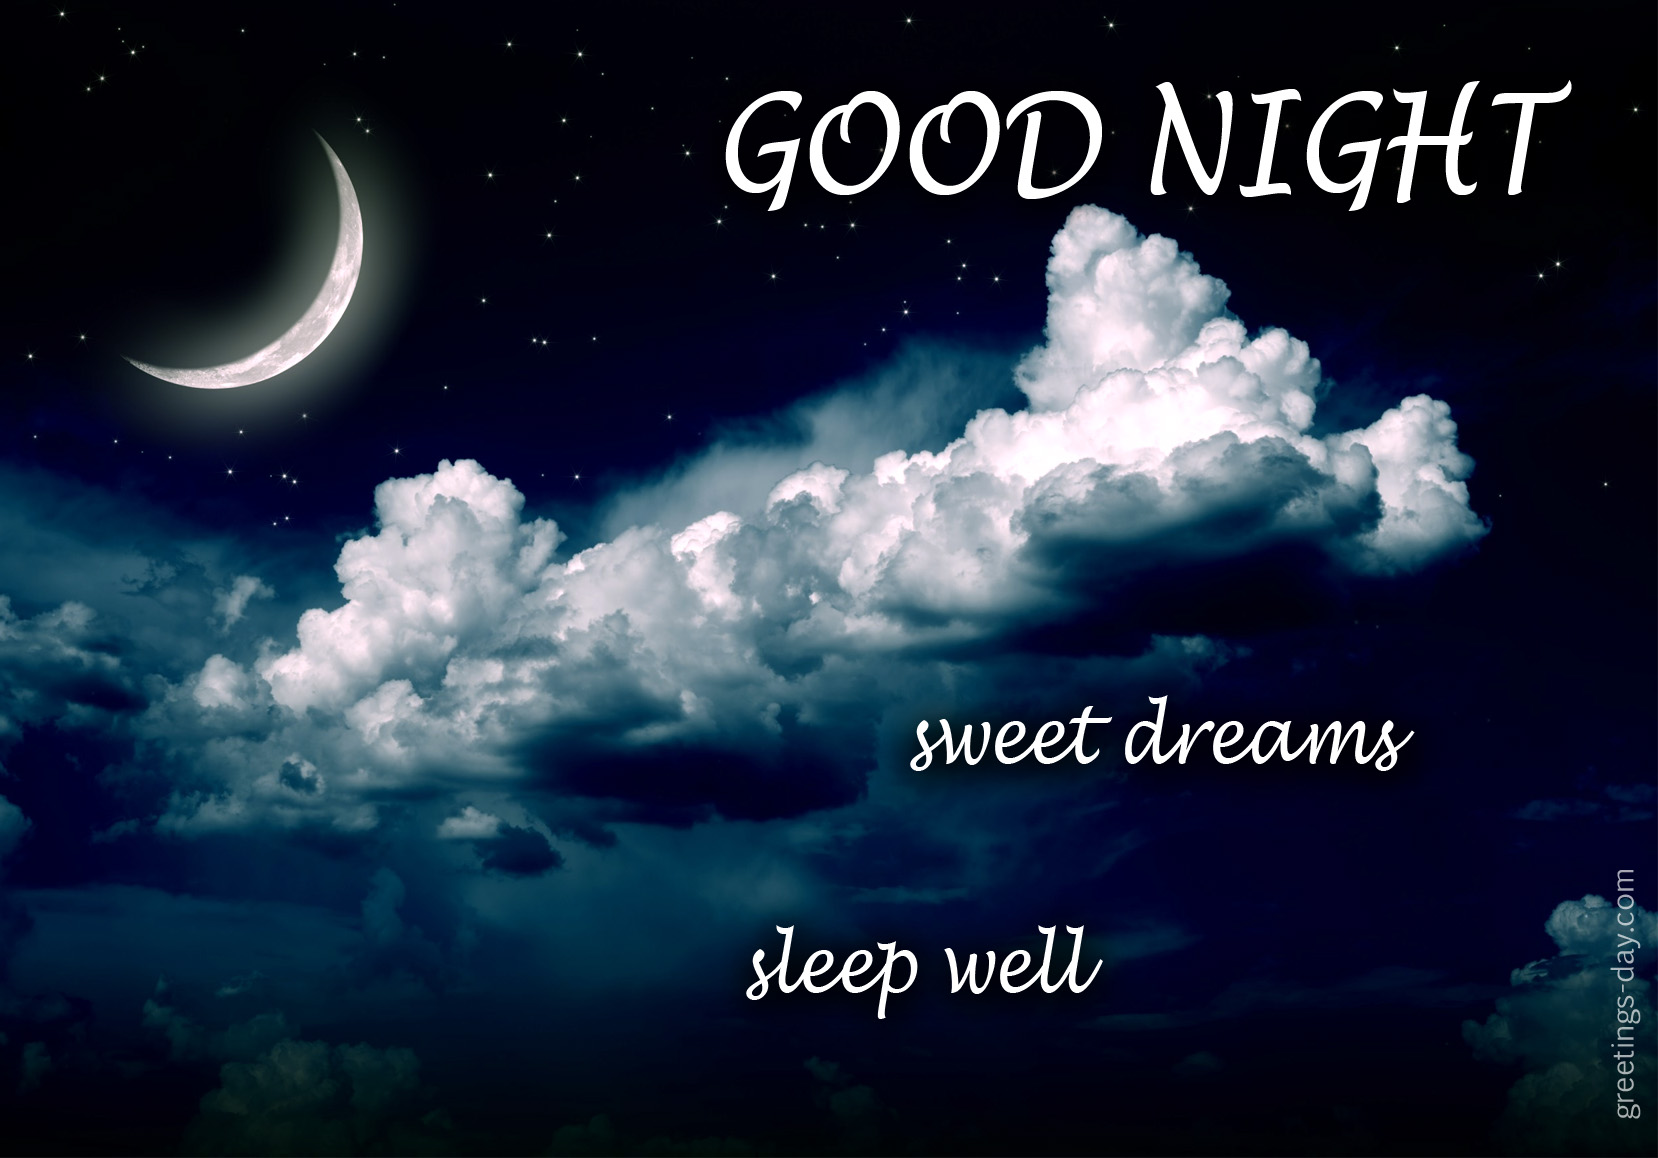 Good night greeting cards pictures animated gifs good night pics m4hsunfo Image collections